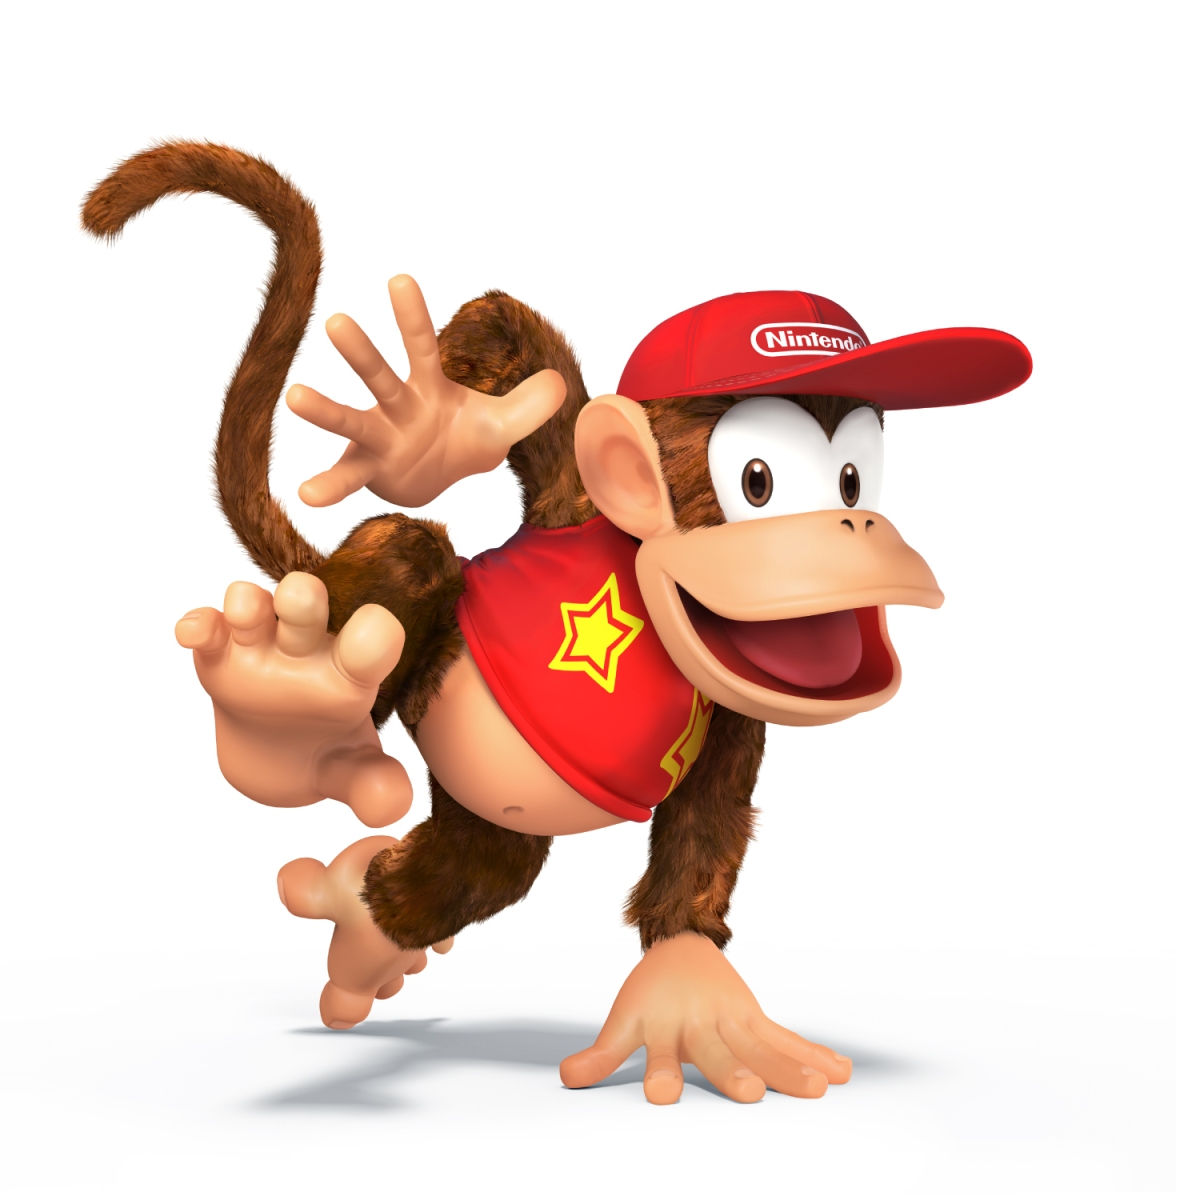 diddy_kong_super_smash_bros_for_wii_u.jpg?w=1200